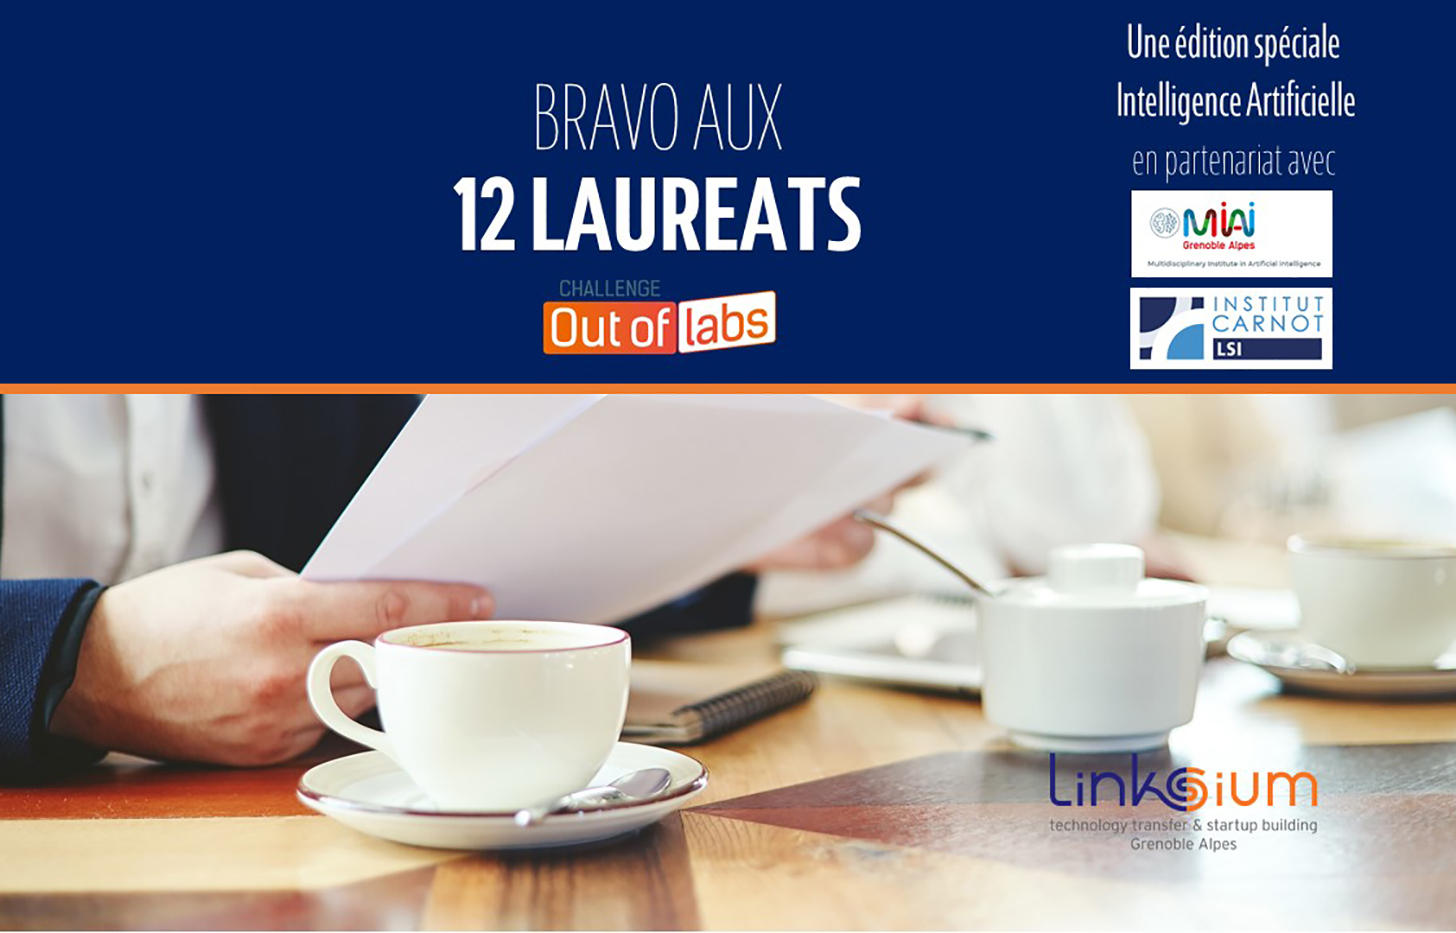 BRAVO AUX LAUREATS DU CHALLENGE OUT OF LABS 10 NOV2020 BIS